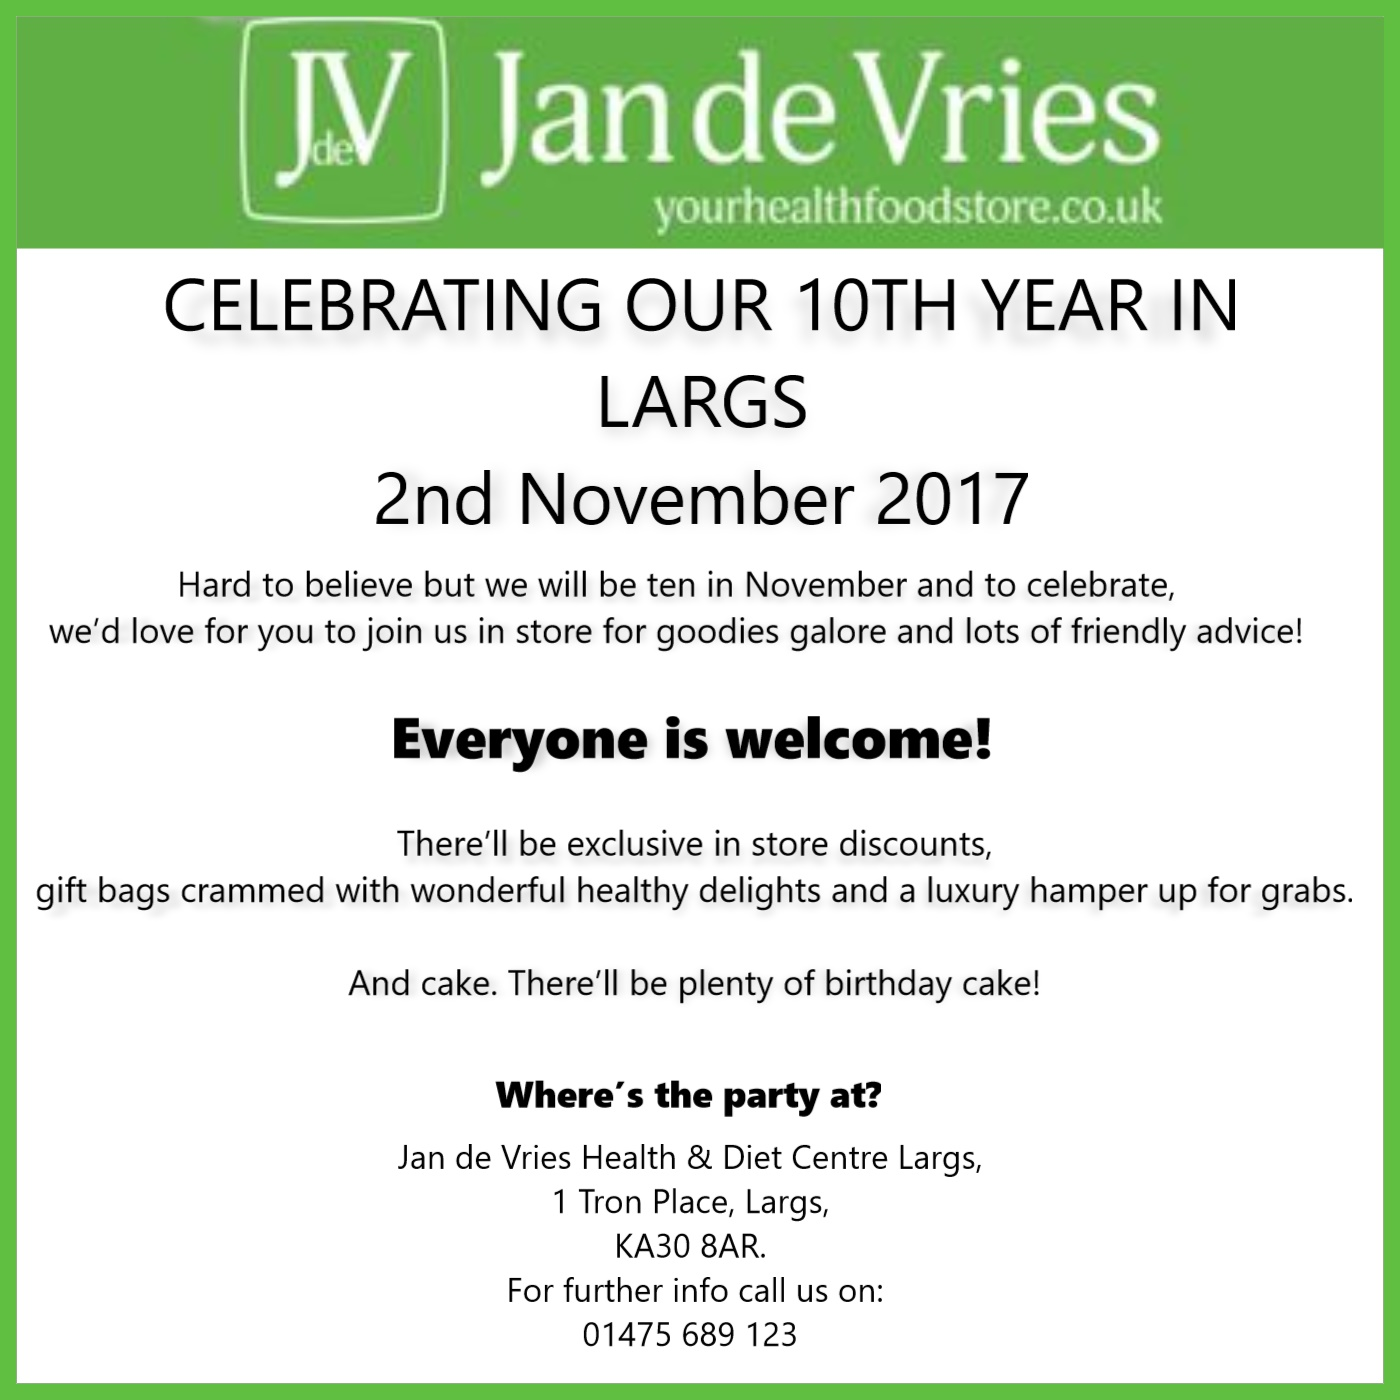 JAN DE VRIES - CELEBRATING OUR 10TH YEAR IN LARGS